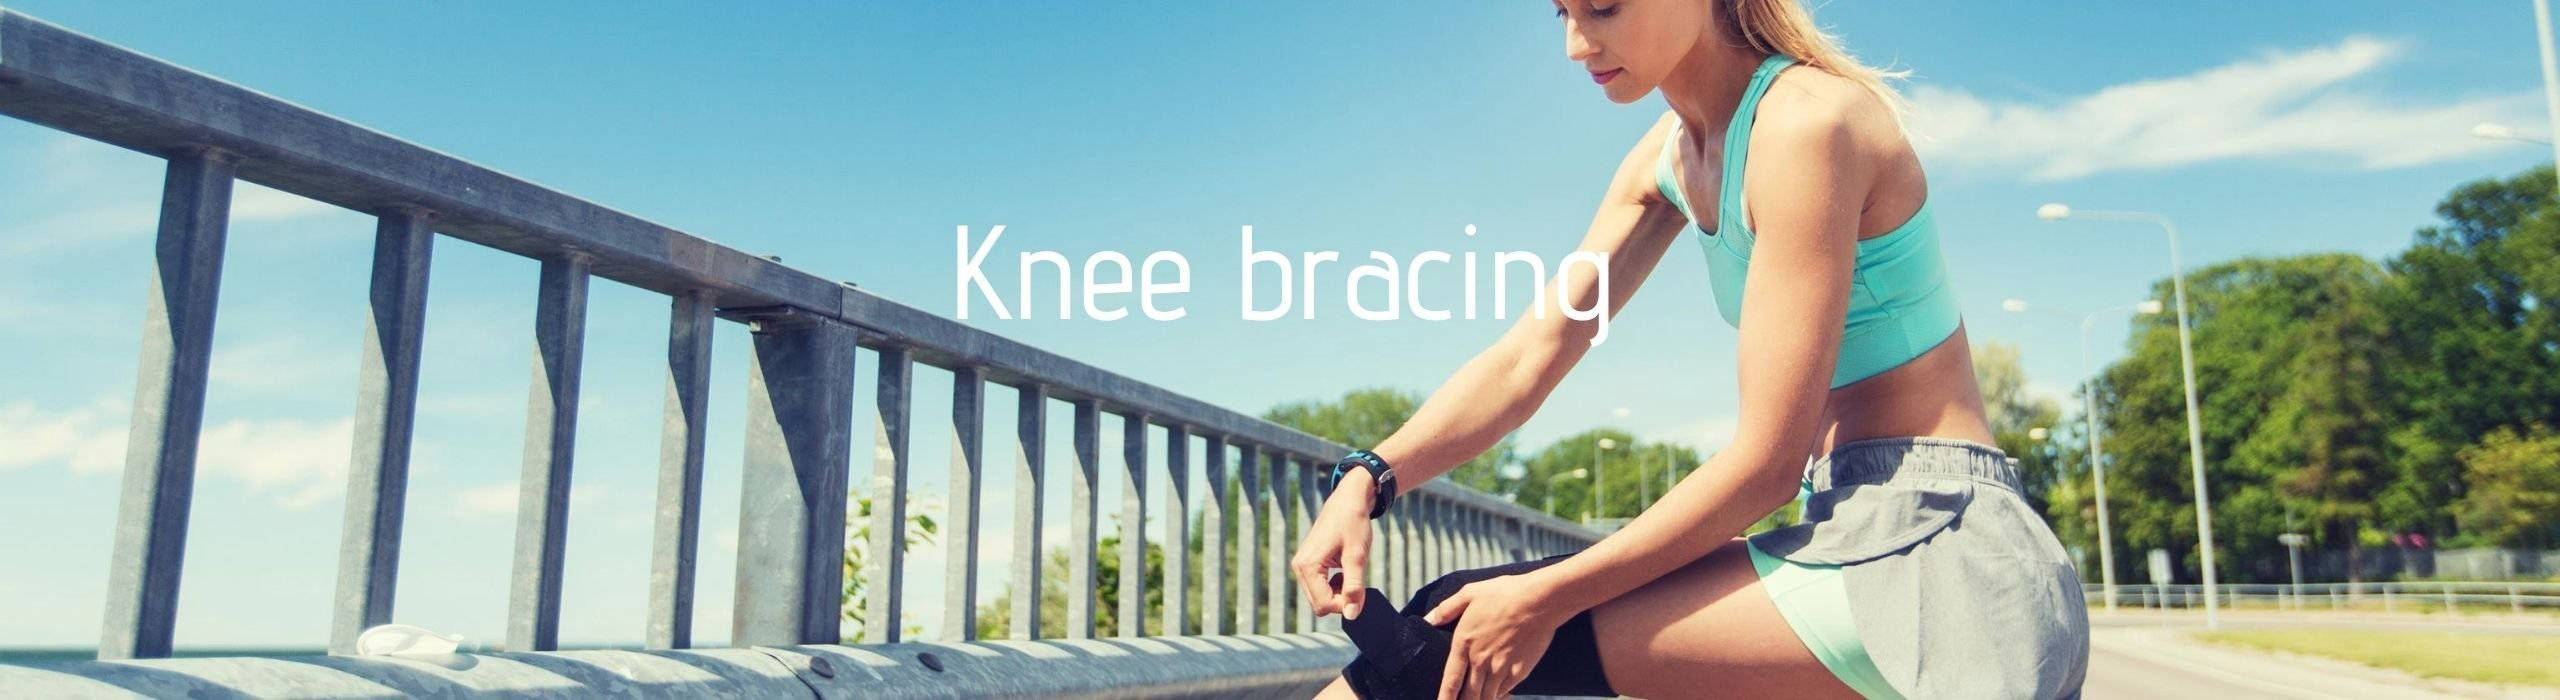 Knee support and knee bracing available at Enable orthotics, Chester